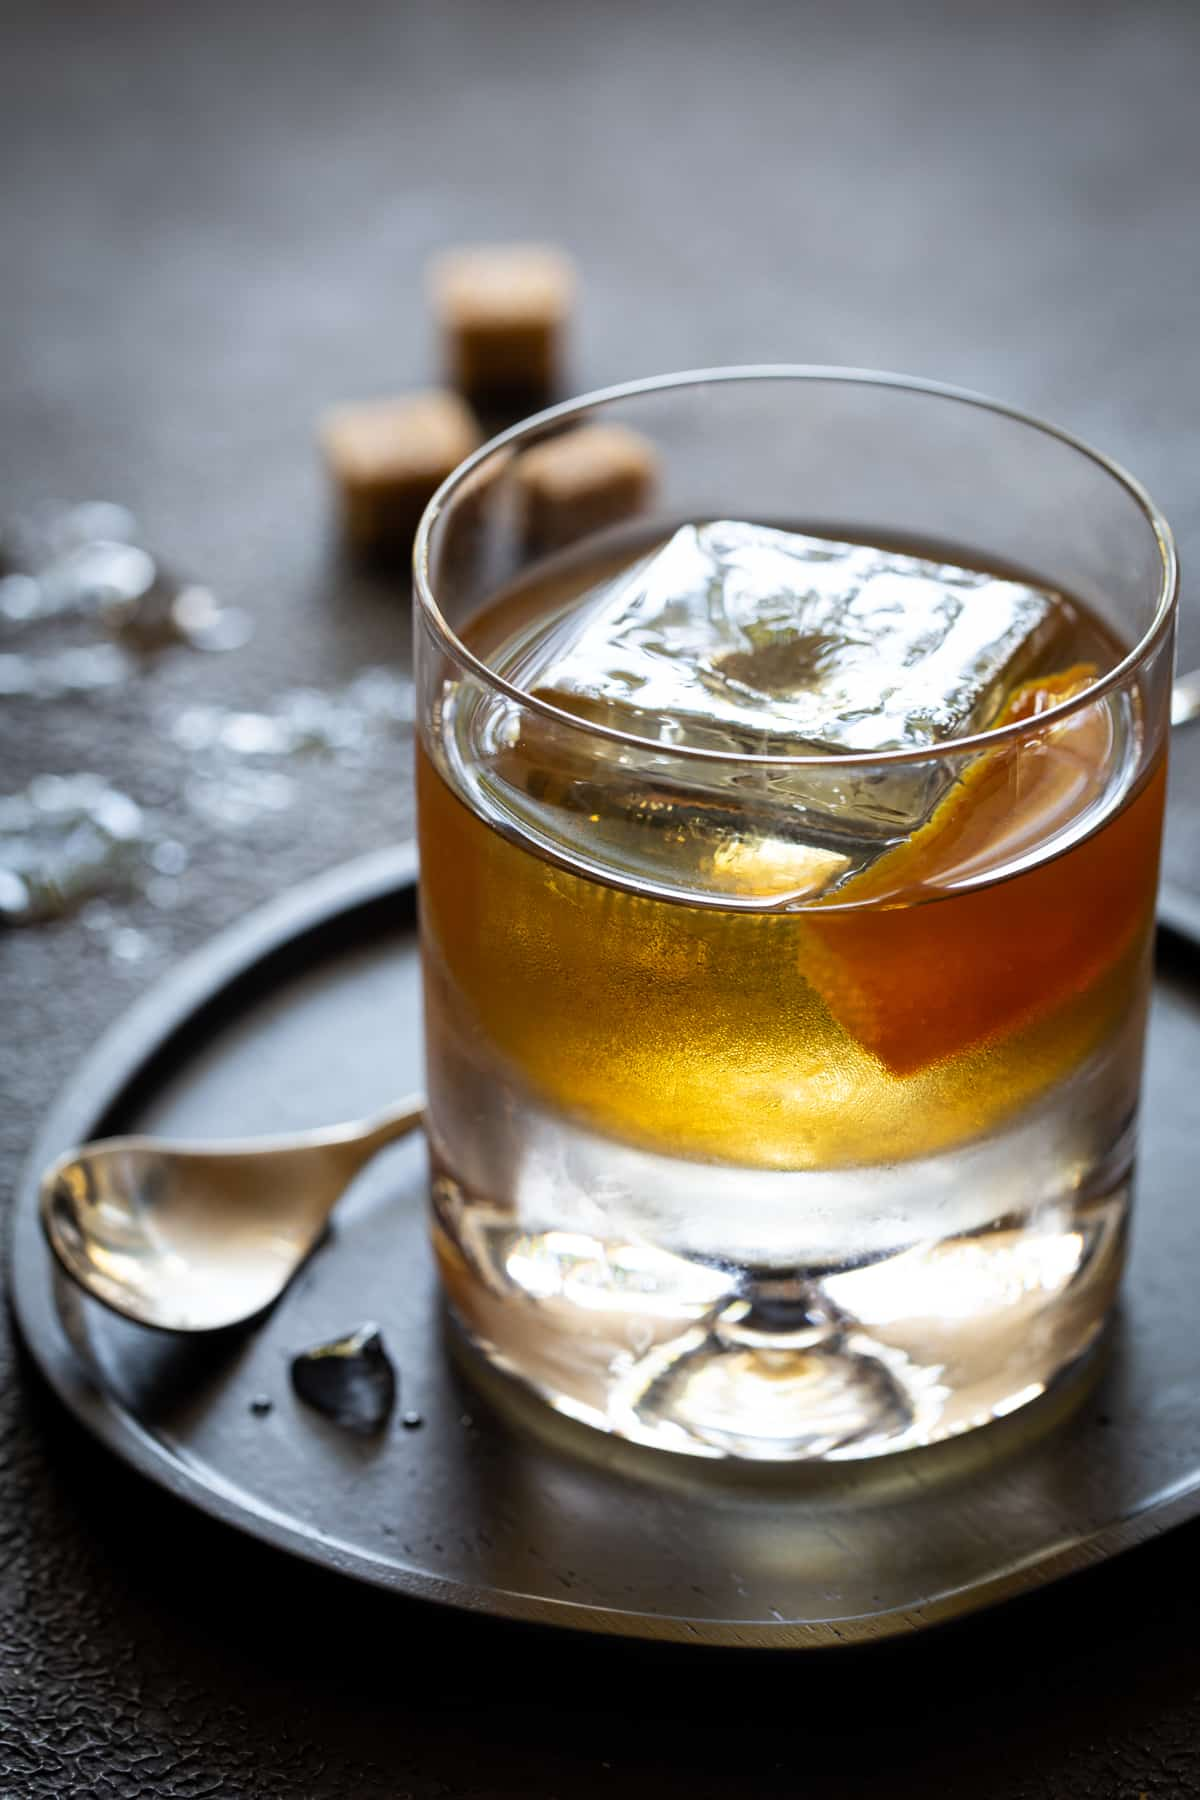 A glass cup on a table, with Old fashioned and Orange